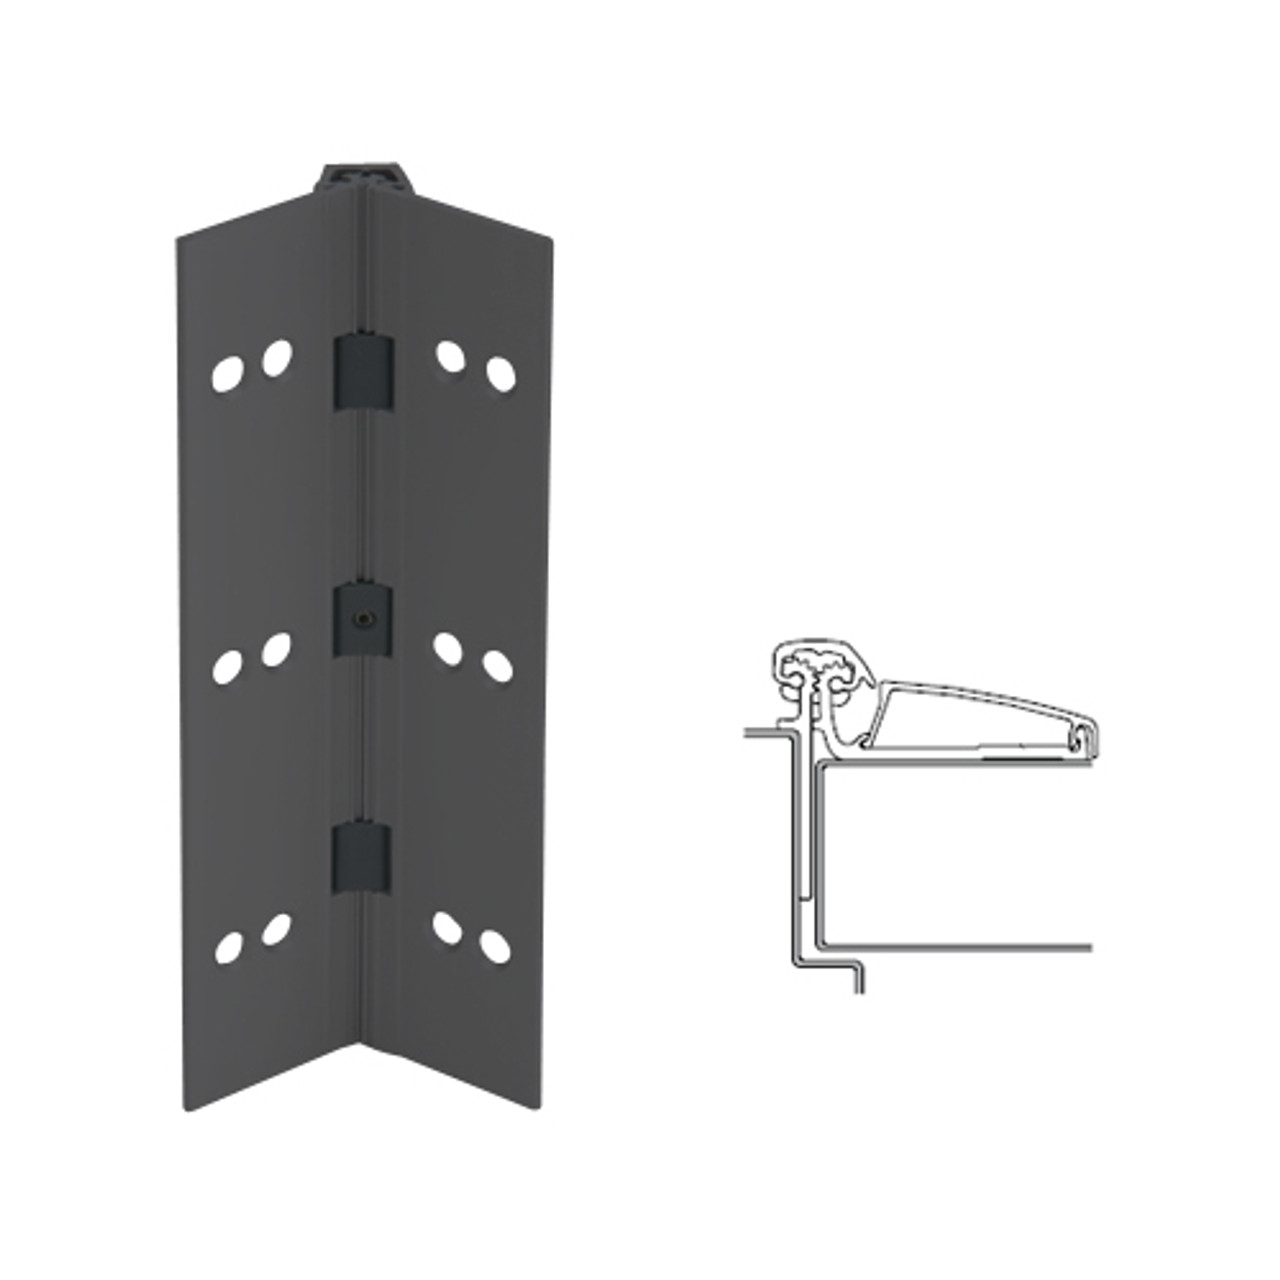 045XY-315AN-83-TF IVES Adjustable Half Surface Continuous Geared Hinges with Thread Forming Screws in Anodized Black